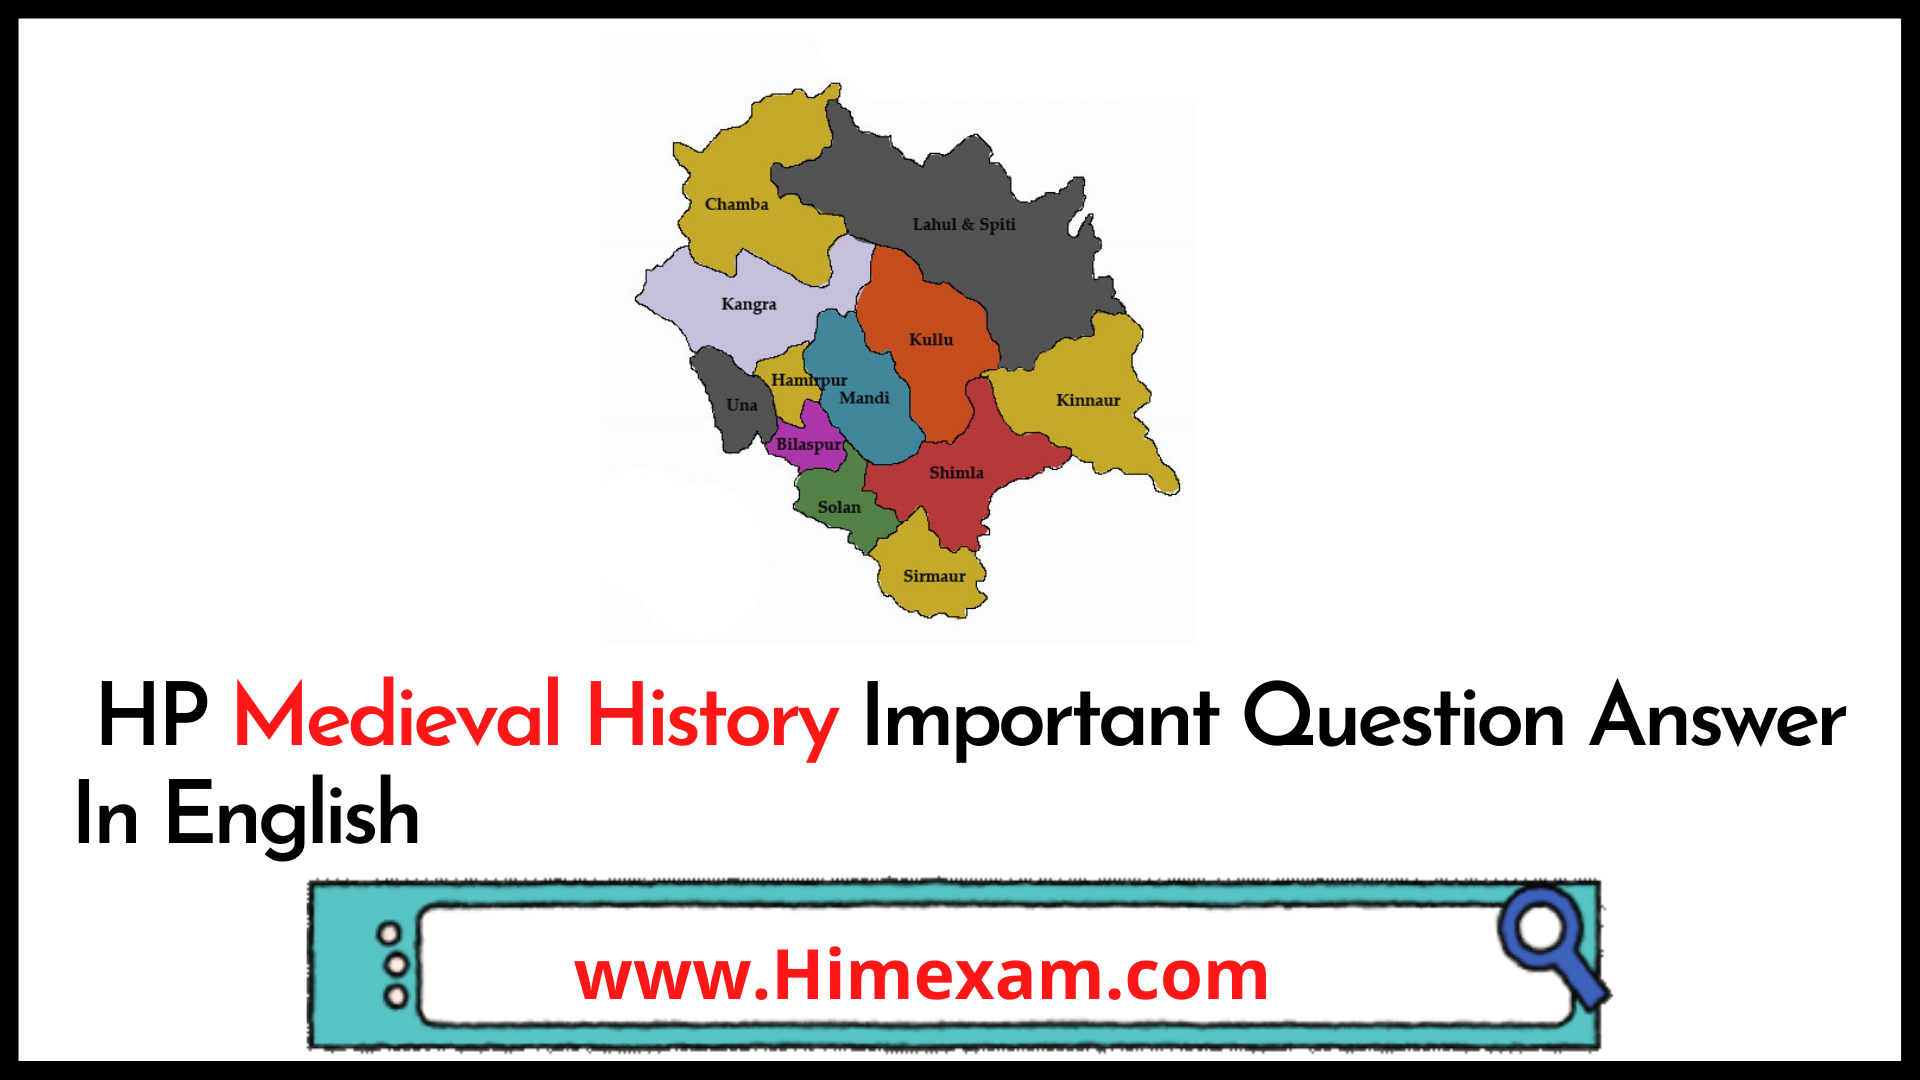 HP Medieval History Important Question Answer In English